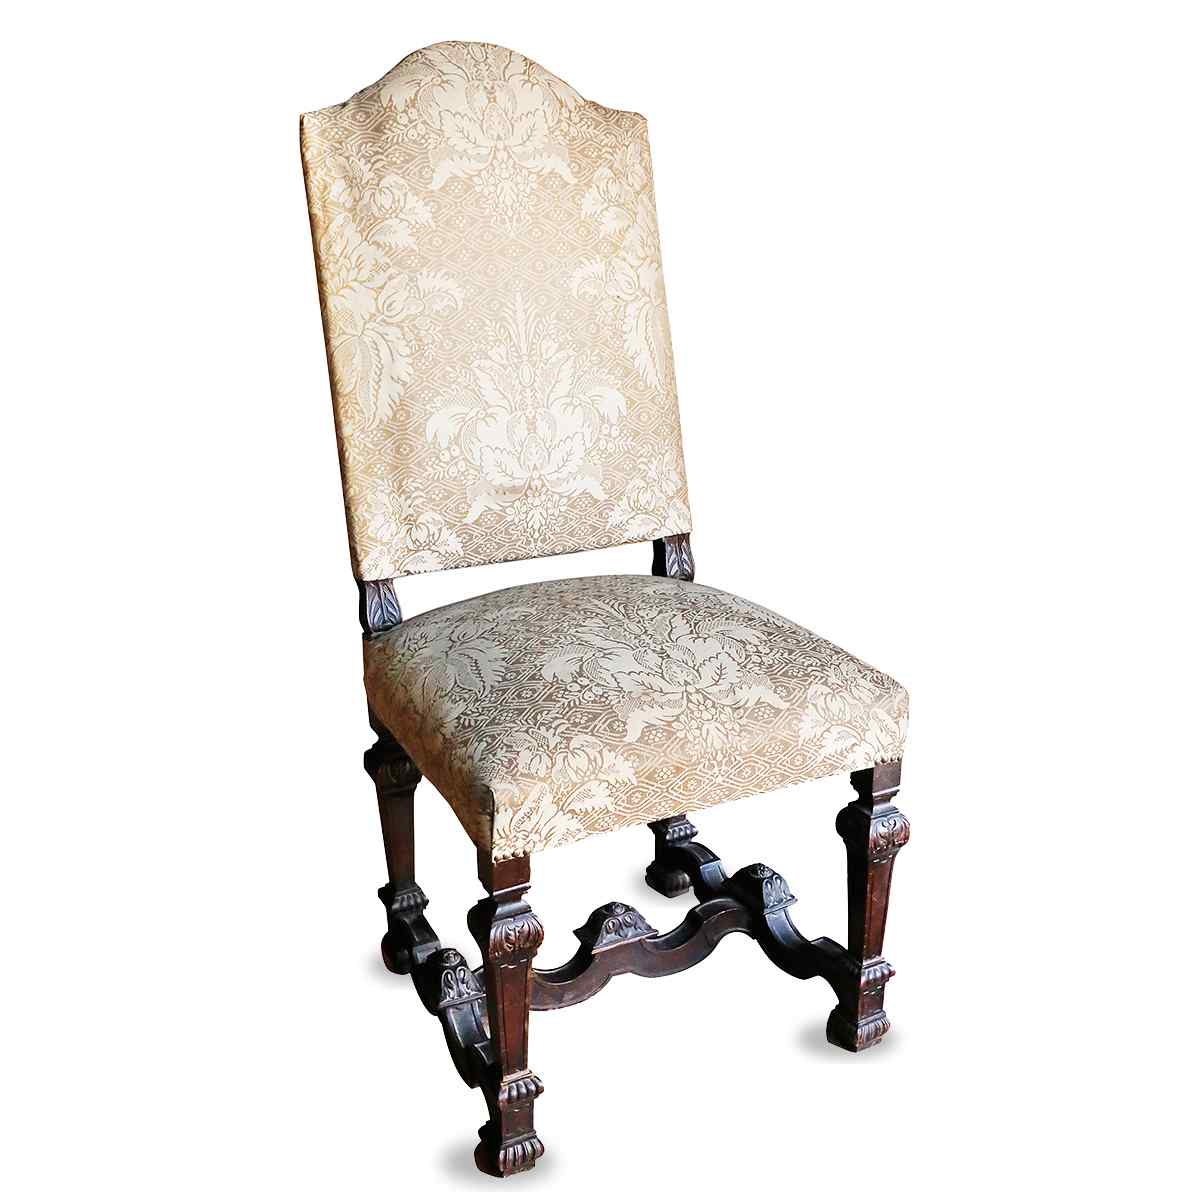 A Set of Upholstered Chairs 19th century